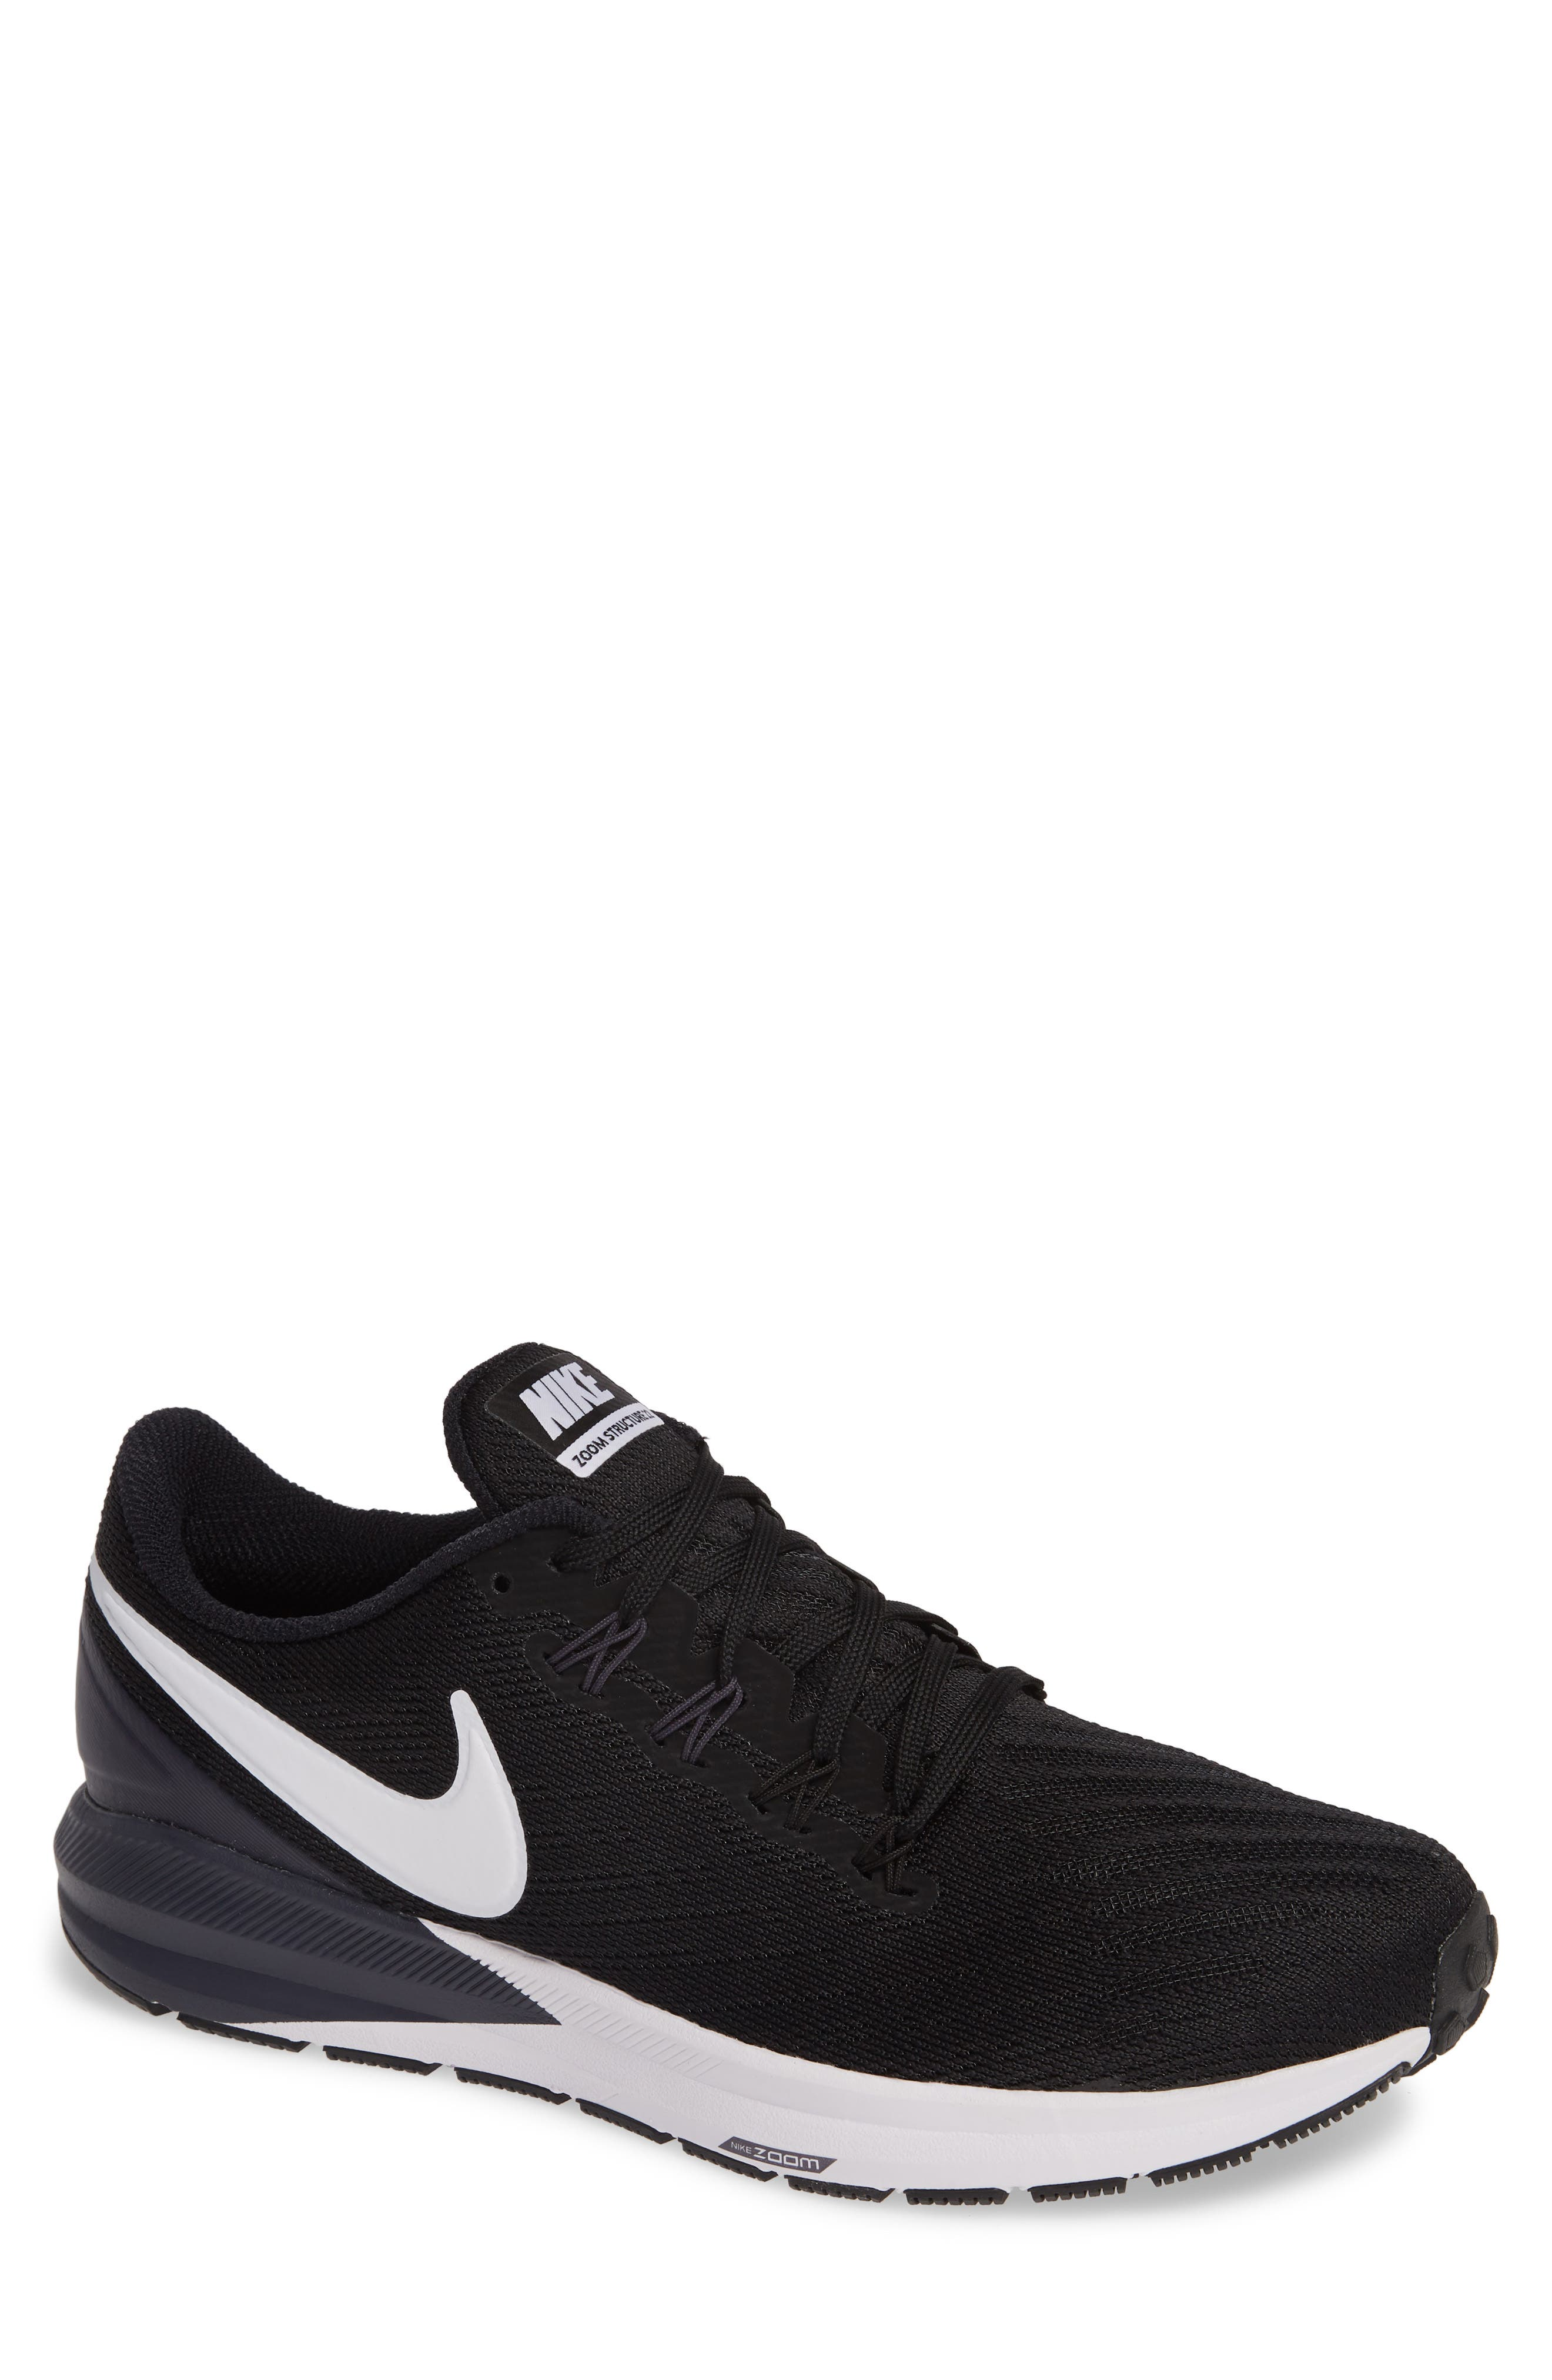 Air Zoom Structure 22 Running Shoe, Main, color, BLACK/ WHITE/ GRIDIRON